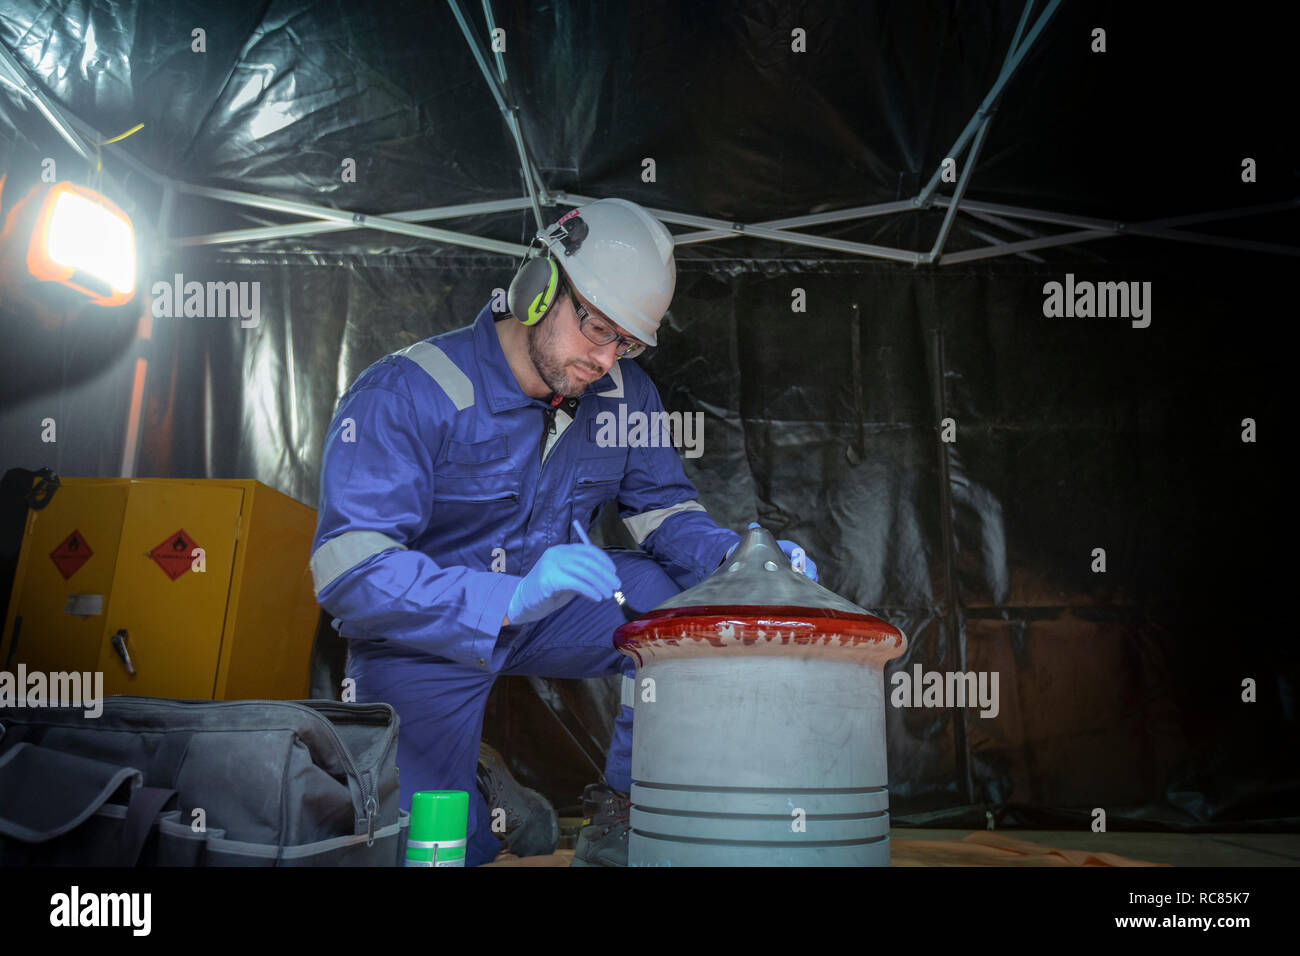 Engineer crack testing large part in turbine hall of nuclear power station - Stock Image